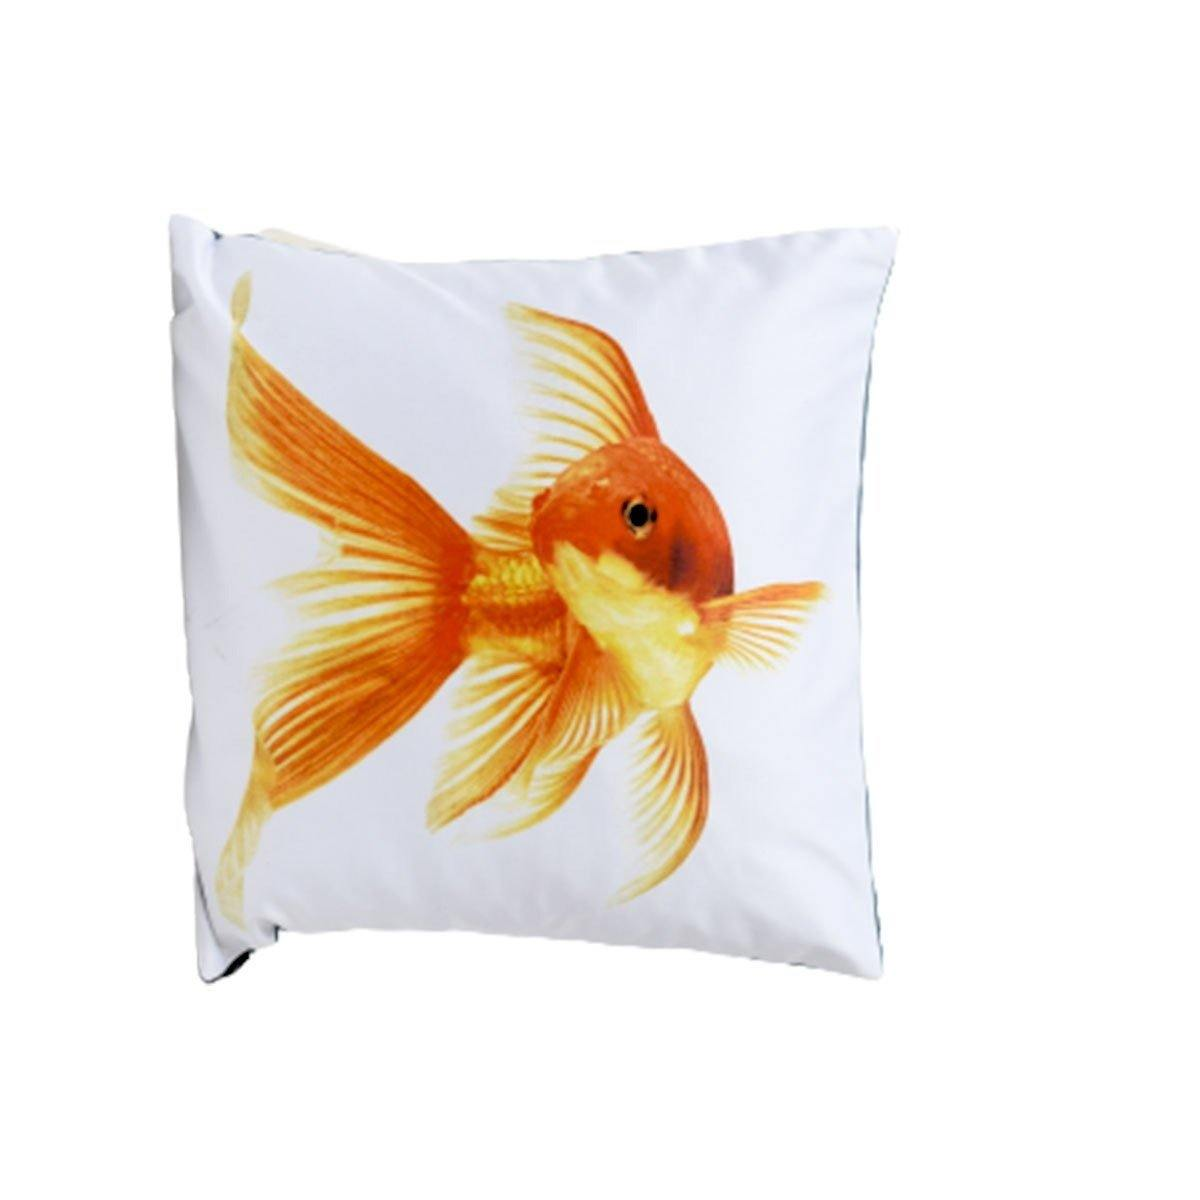 Orange fish digital cushion